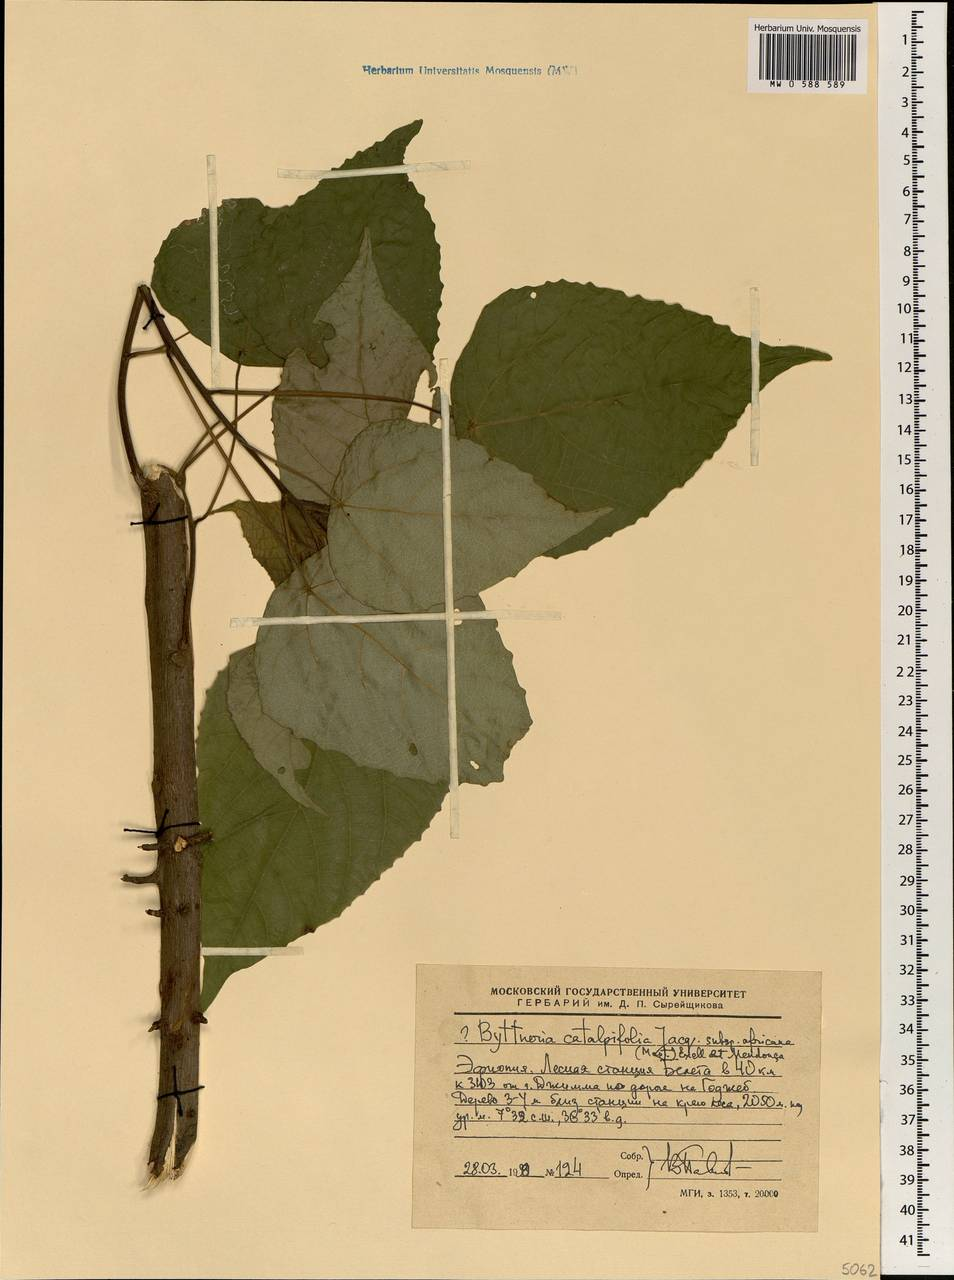 Byttneria catalpifolia subsp. africana (Mast.) Exell & Mend., Африка (AFR) (Эфиопия)